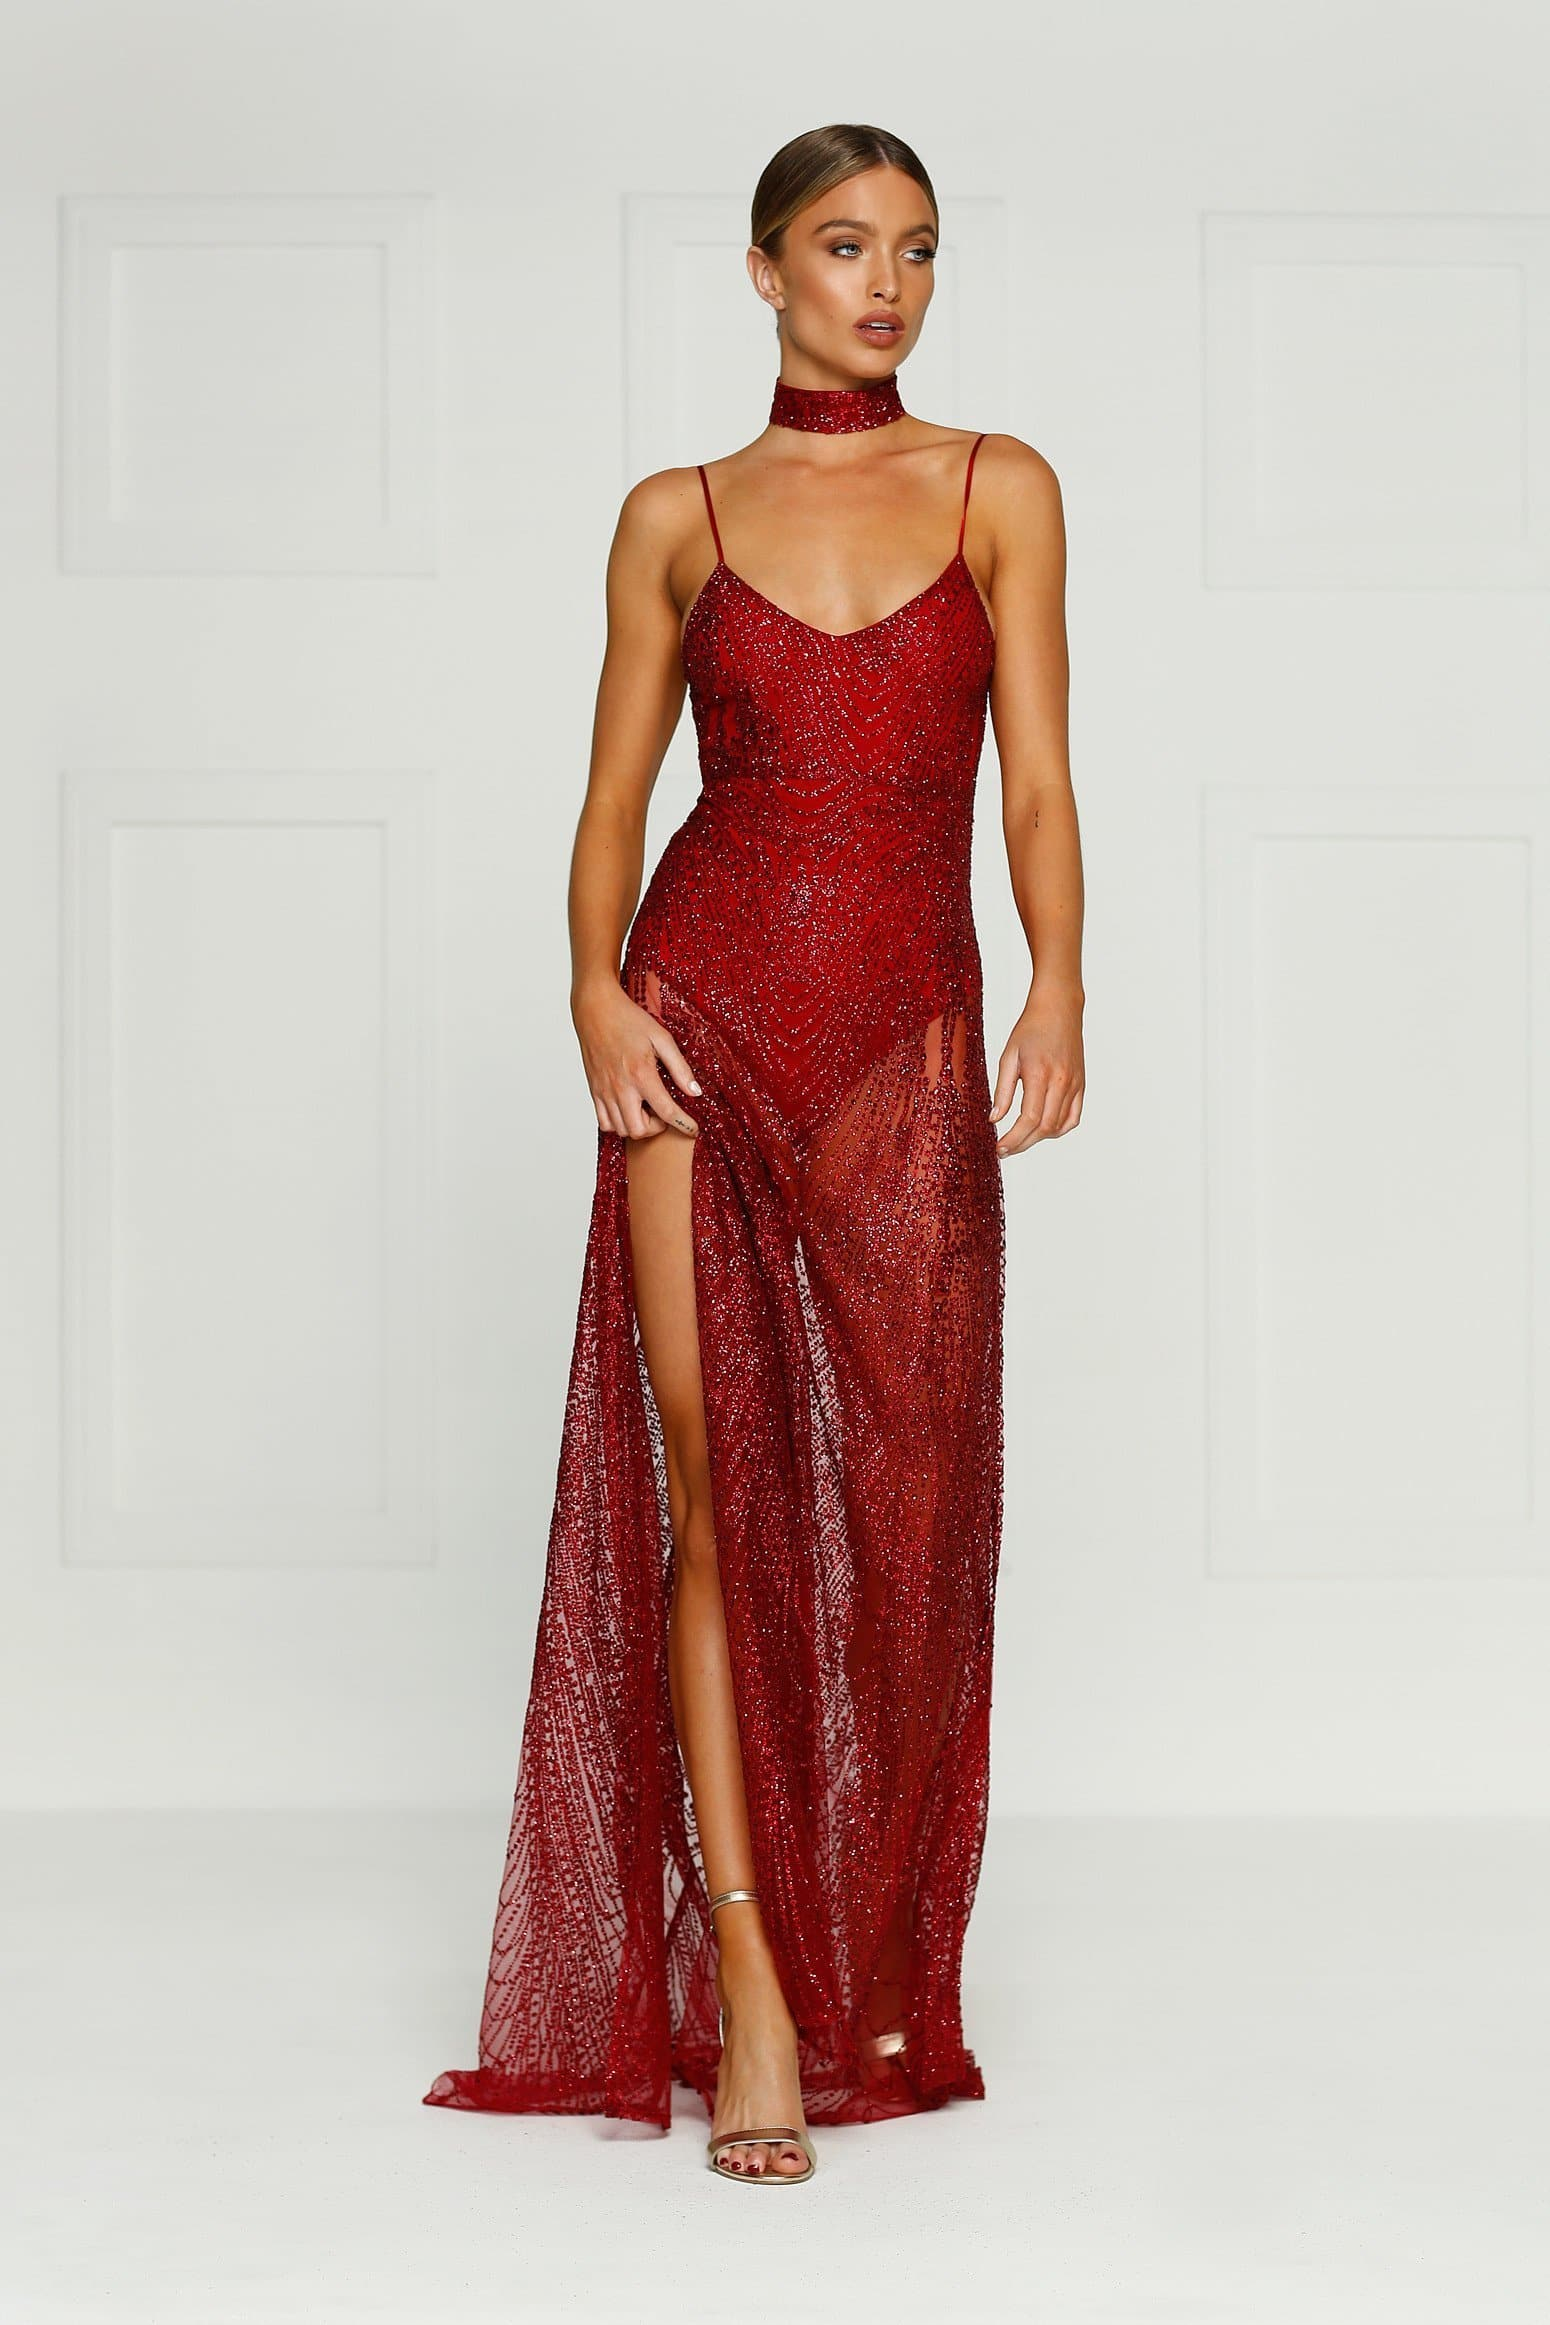 Jewels Gown - Burgundy